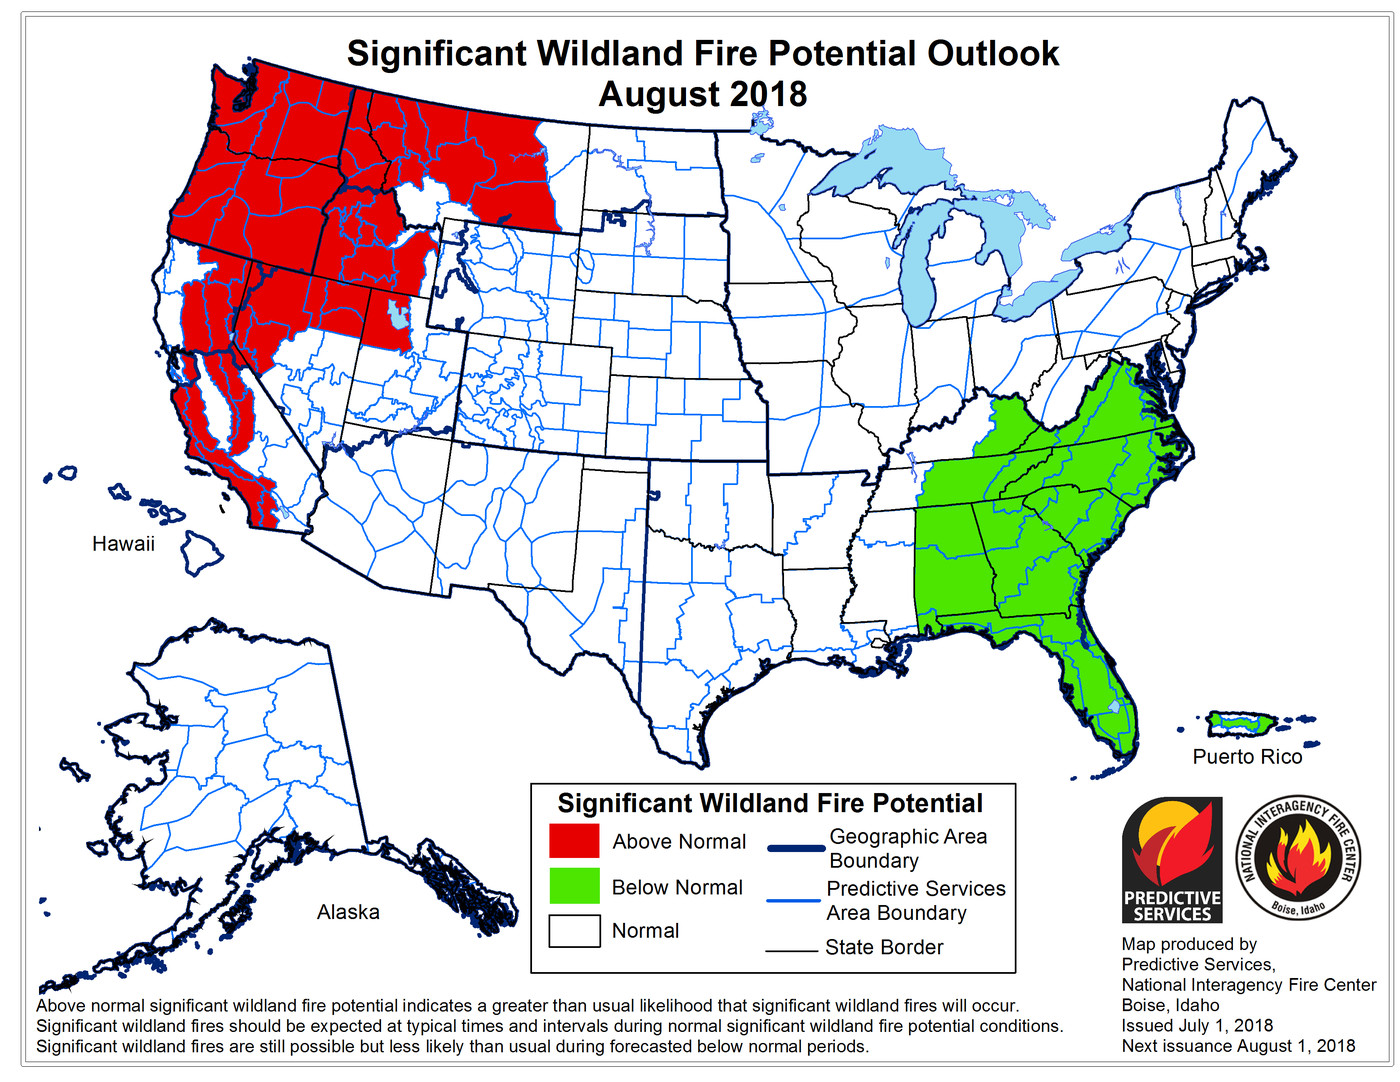 Wildfires 2018: Mendocino, Carr, and Ferguson fires are